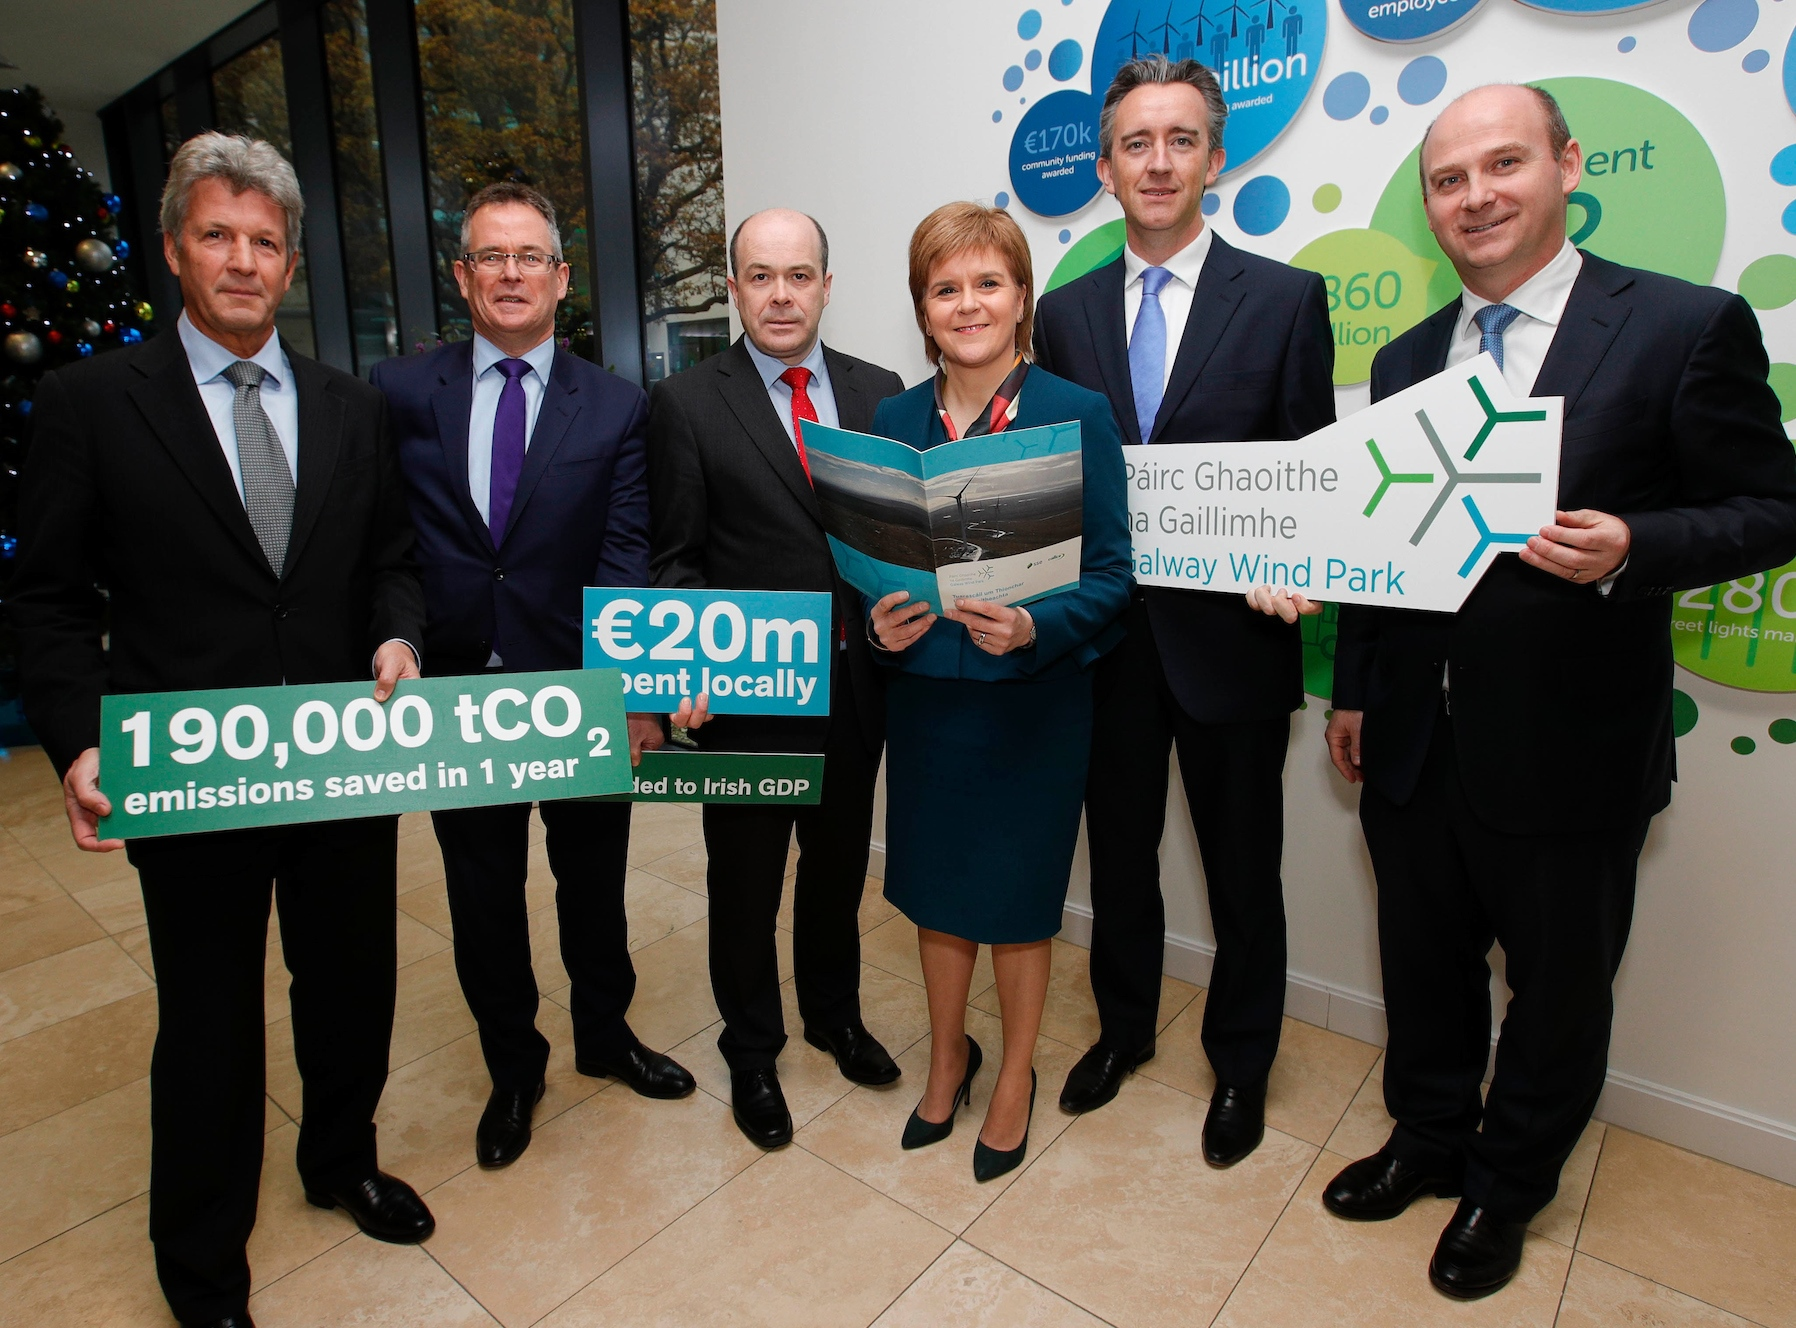 "School pupil Grace Hooper (14) from St. Paul's Secondary School in Oughterard, Co. Galway, presented her prize-winning photo 'Snow-capped mountains, Connemara' to First Minister of Scotland, Nicola Sturgeon, and Ireland's Climate Action Minister Denis Naughten at the launch of the Galway Wind Park Sustainability Impact Report at green energy provider SSE Ireland's HQ in Dublin. Grace said: ""I was delighted to be able to present my picture to First Minister Sturgeon and Minister Naughten. I'm really happy I won the competition. I didn't expect it at all!"" Picture Conor McCabe Photography."